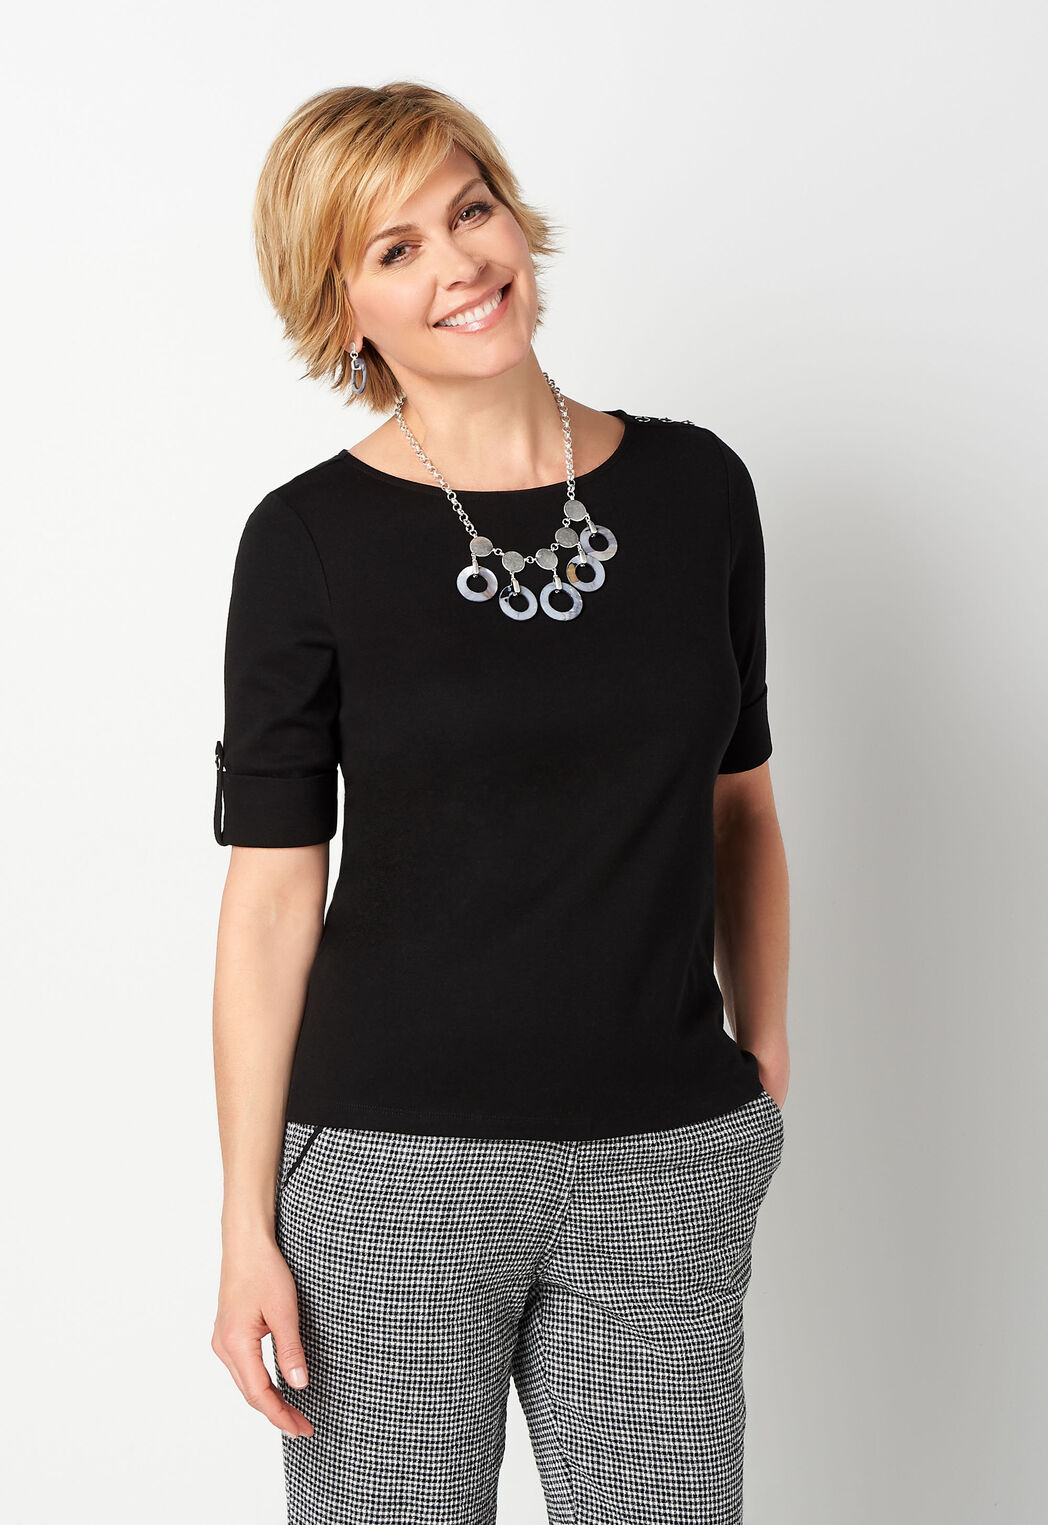 d75b63c29 ... Tops Solid Elbow Sleeve Shoulder Detail Boatneck. add to wish list · add  to wish list